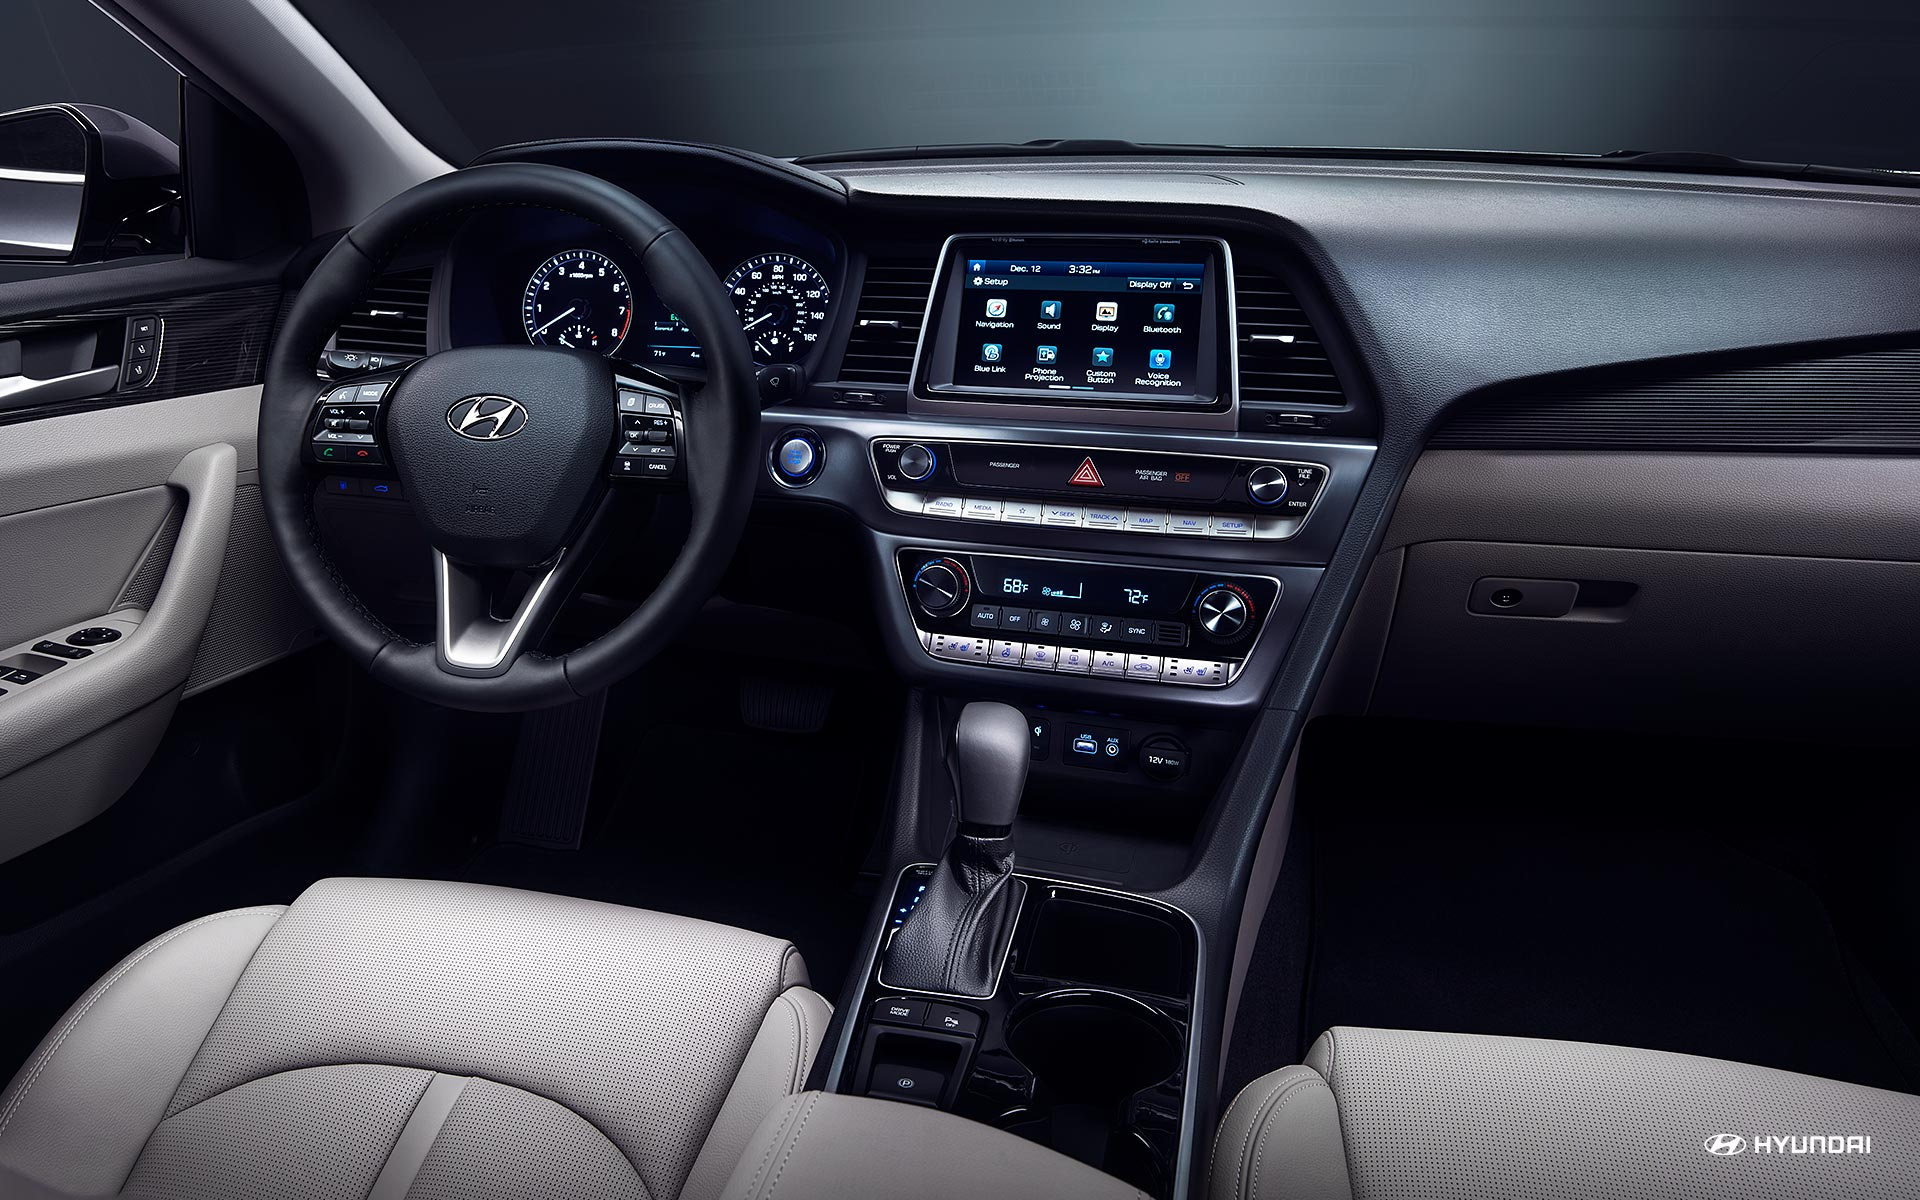 2018 Sonata Interior with Available Features